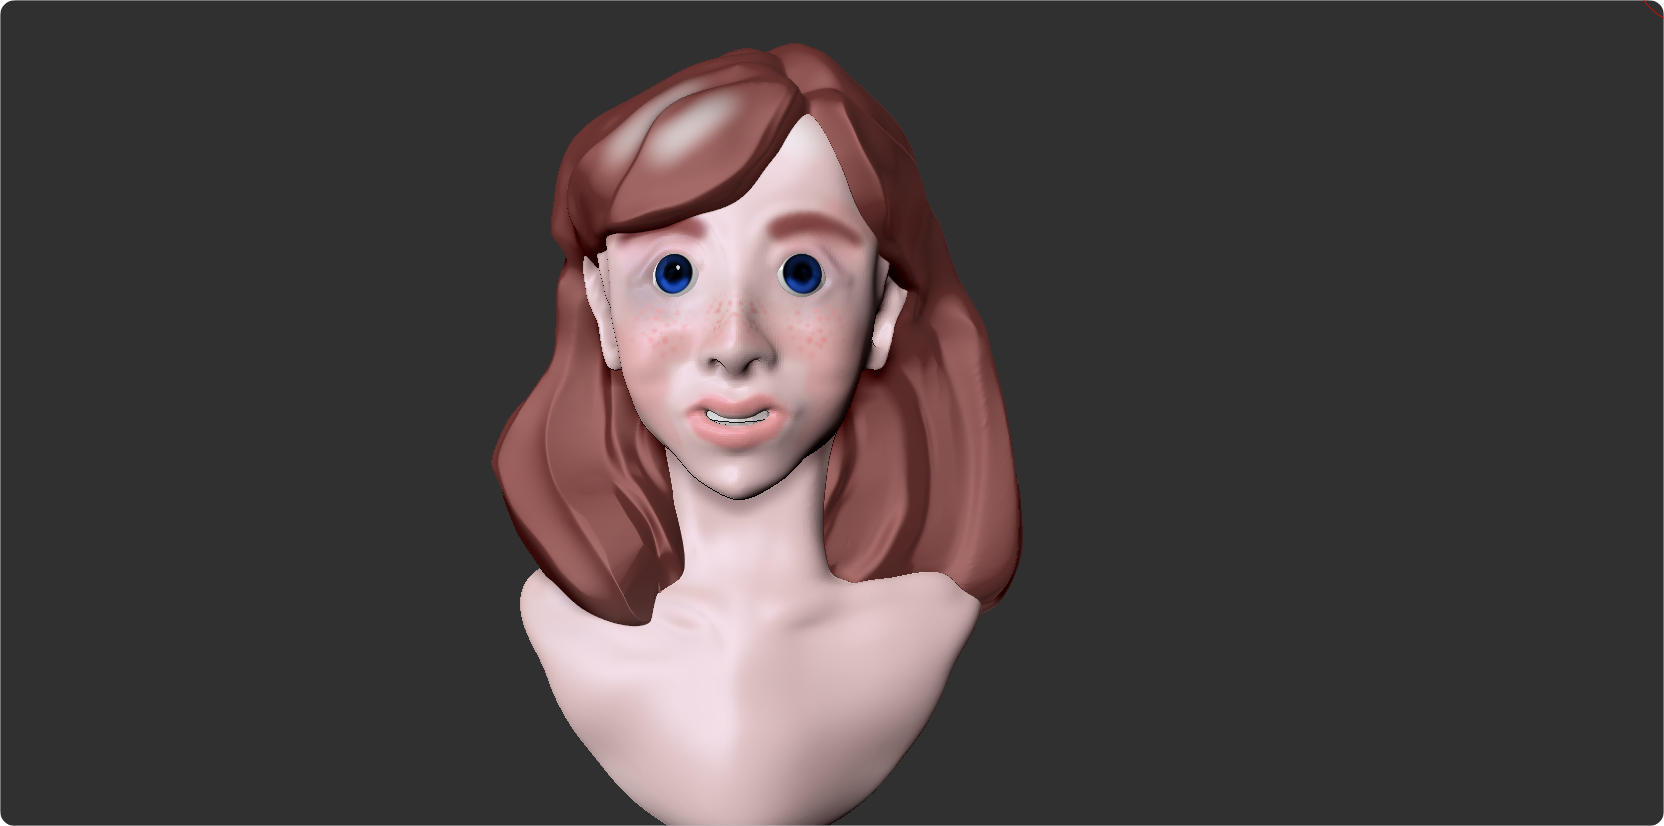 ZBrushCore_2016-10-22_10-05-22.png